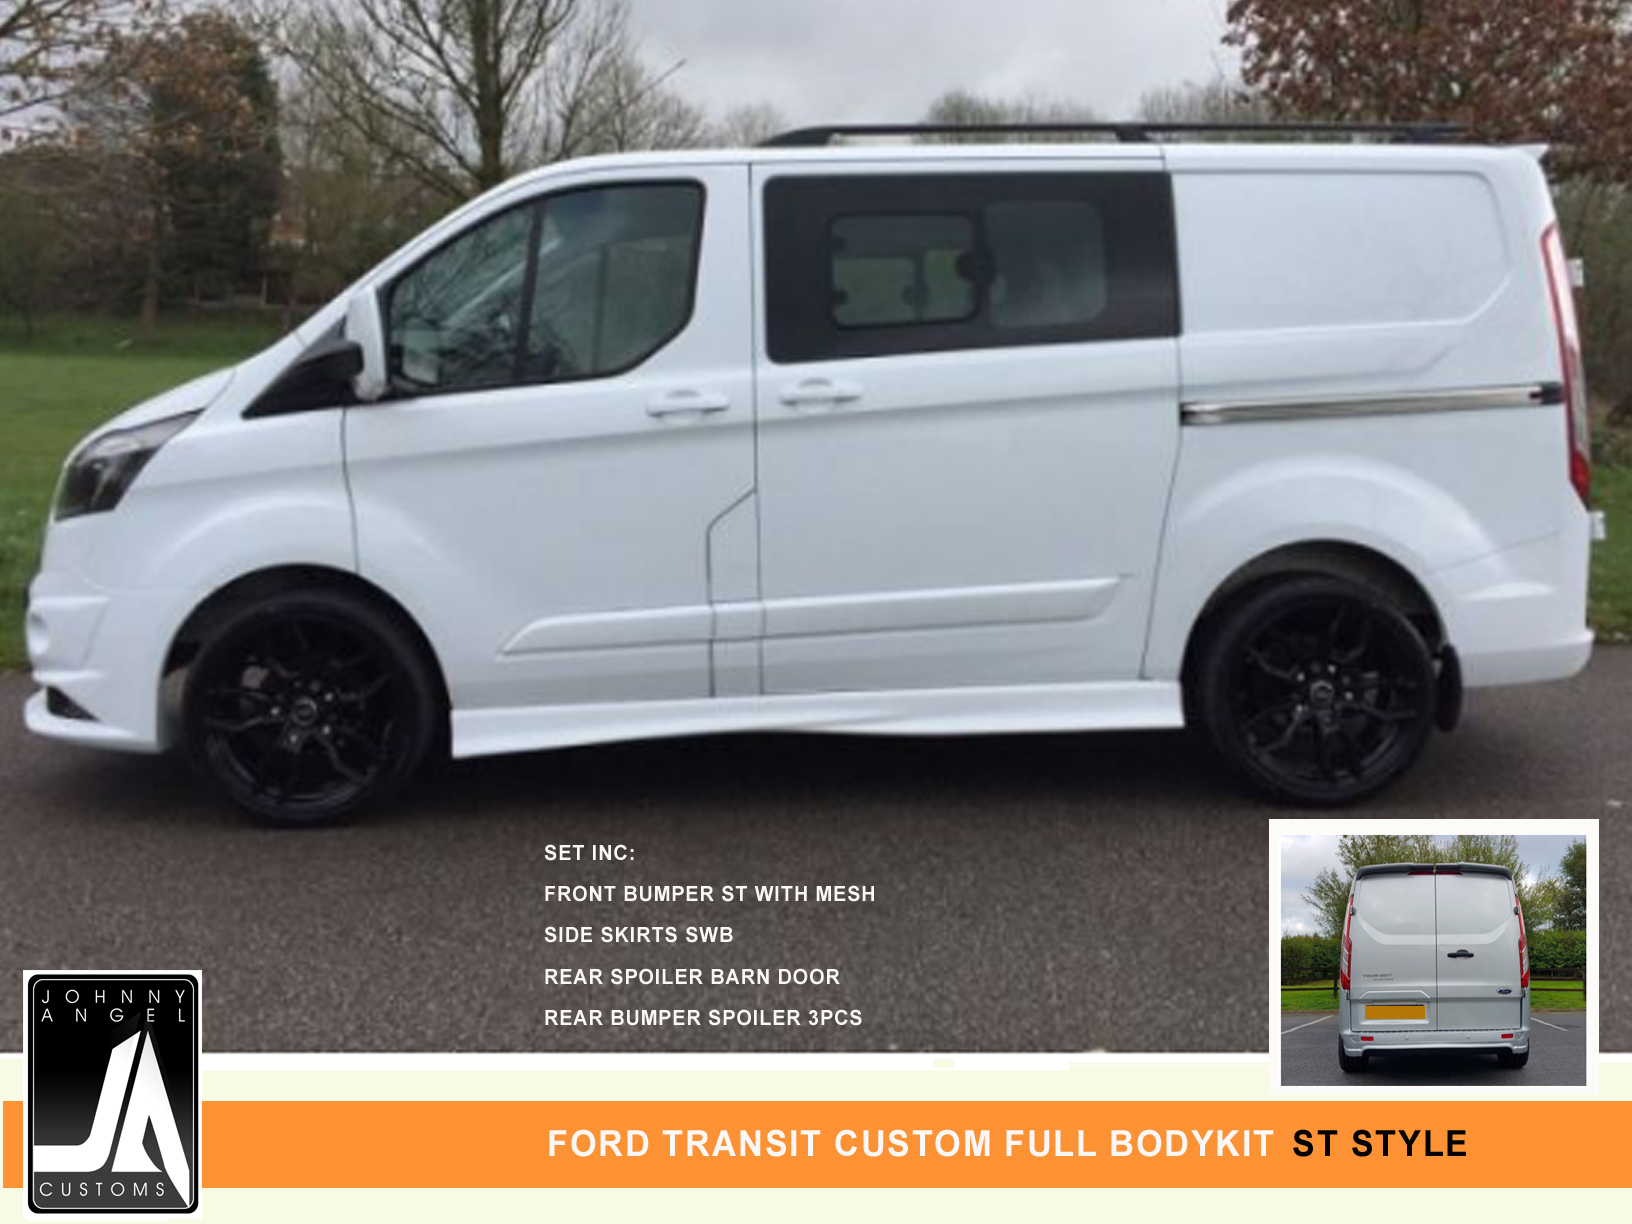 FORD TRANSIT CUSTOM FULL BODYKIT  ST Style By Johnny Angel Customs Pic 2